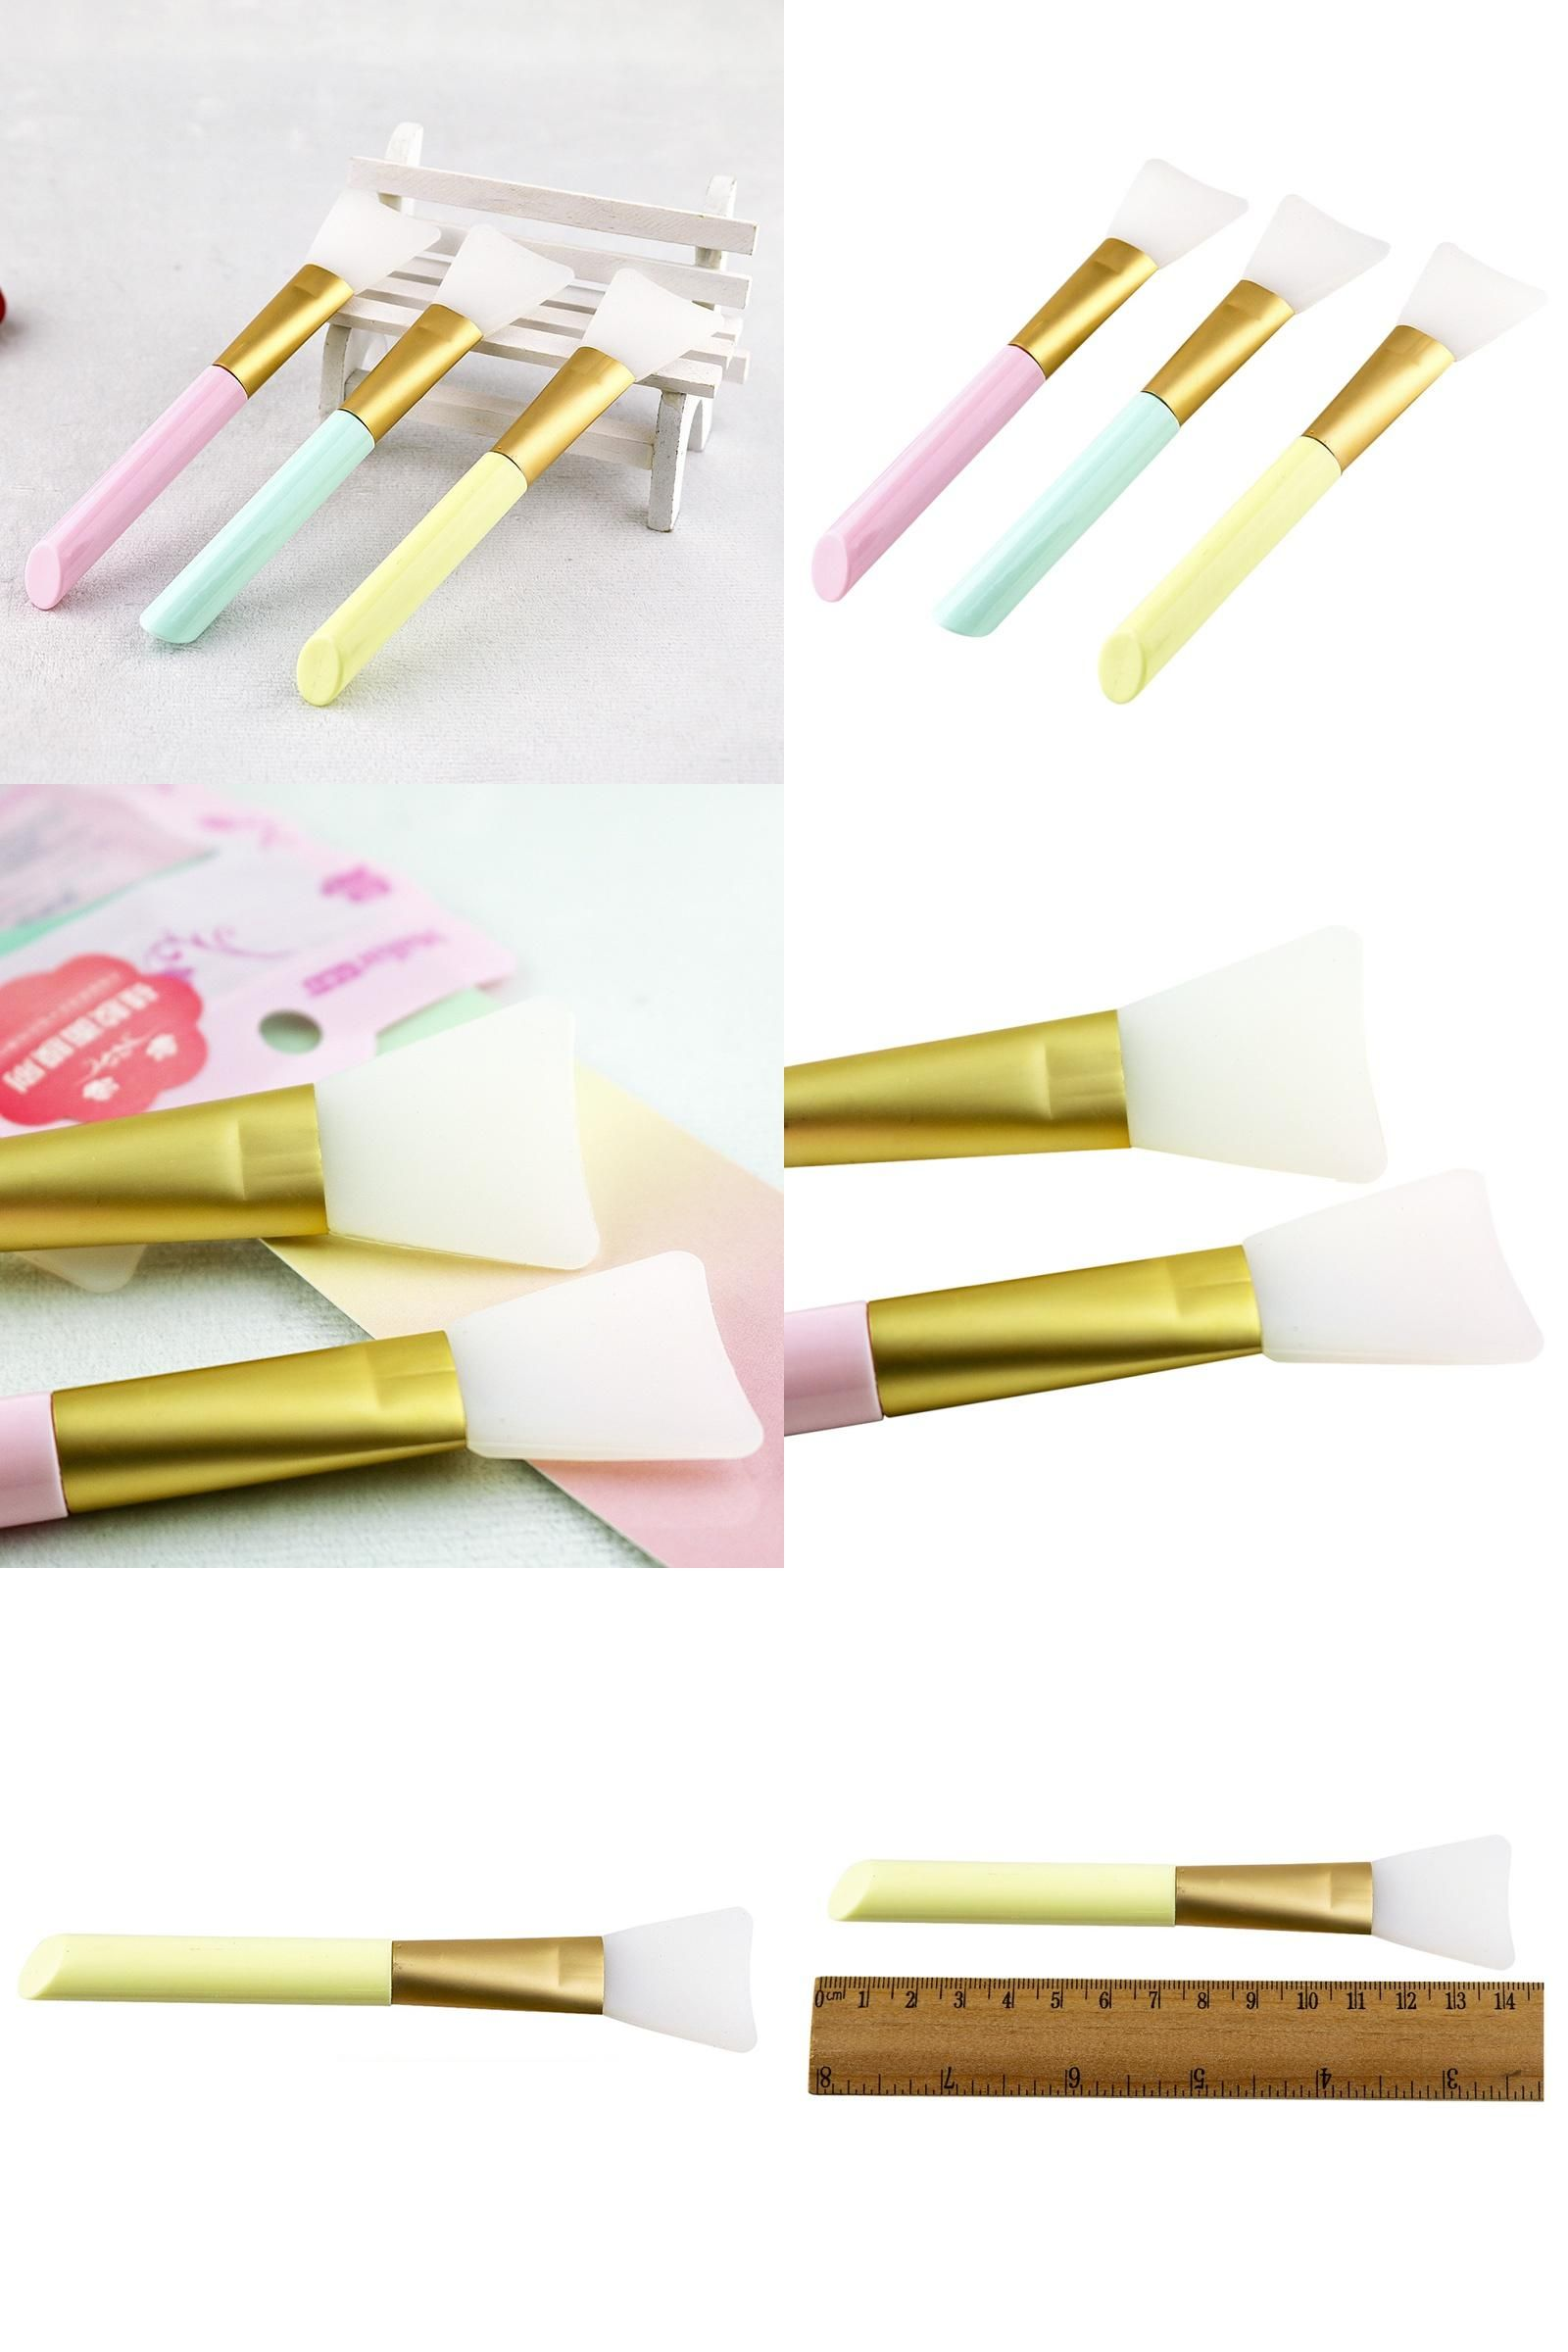 [Visit to Buy] 2017 New 1pc Professional Makeup Mask Brush